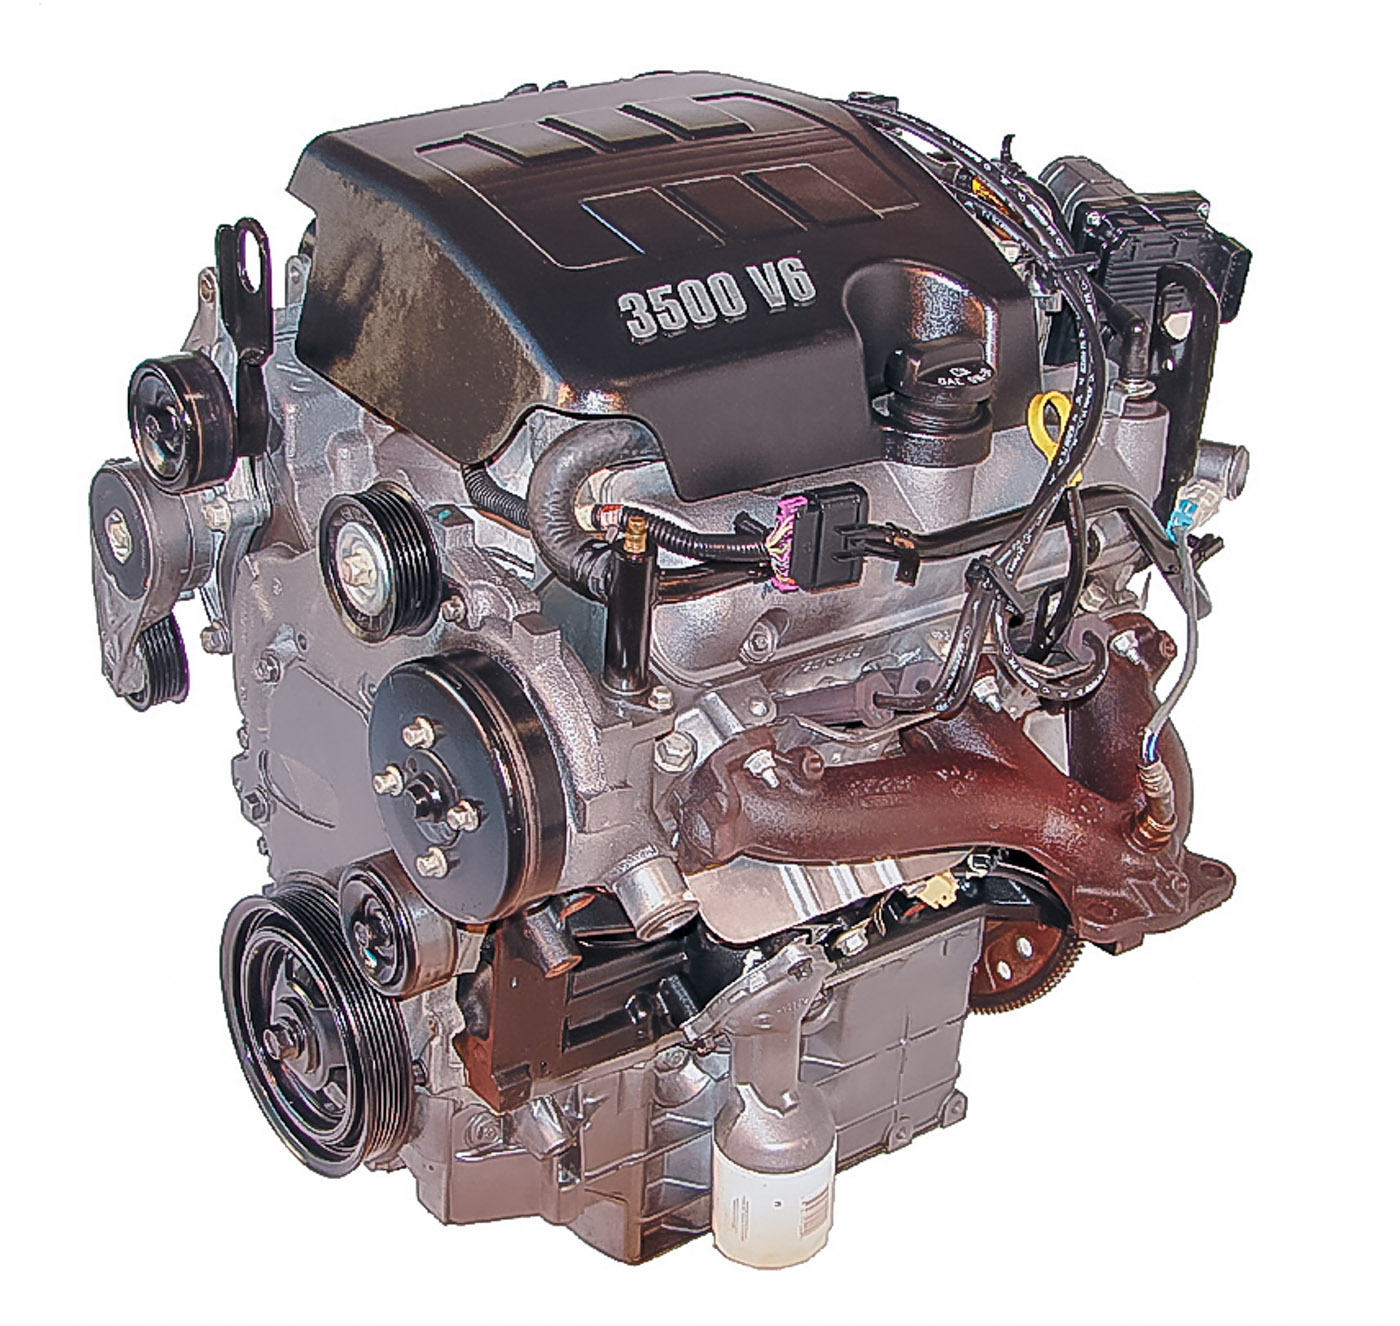 2005-2006 Chevrolet Uplander 3.5L V6 Used Engine